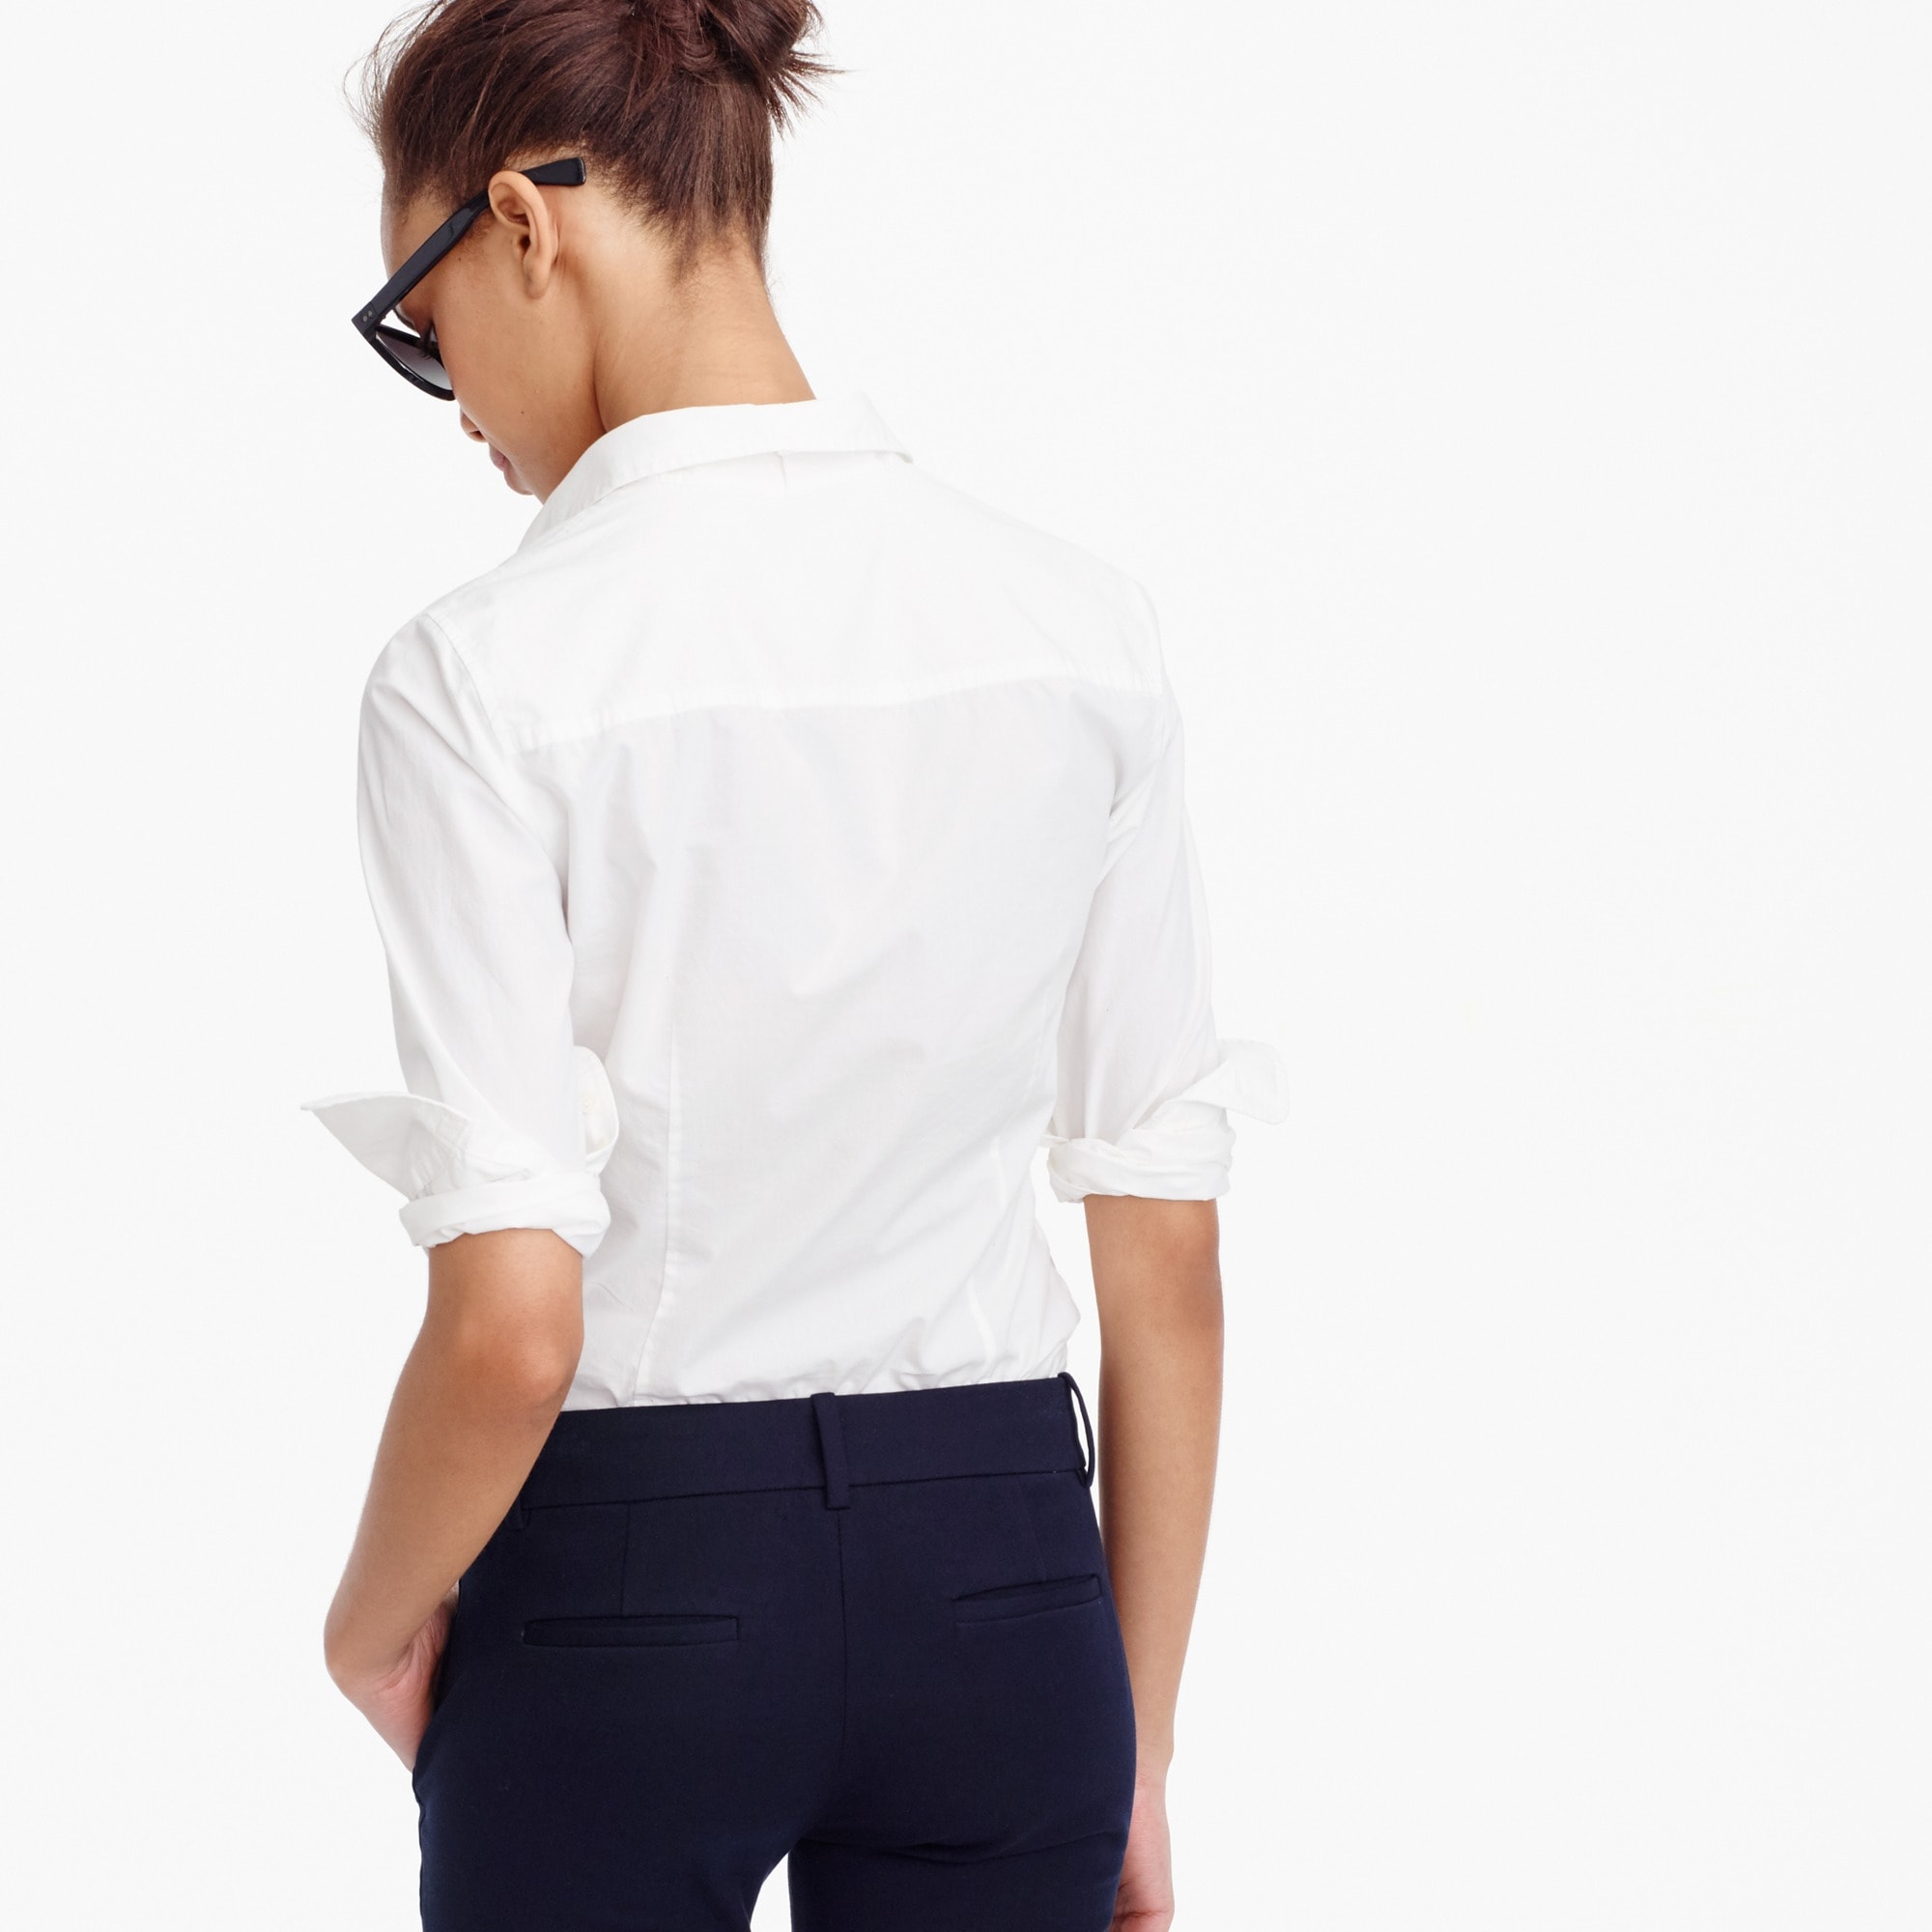 Image 4 for Tall new perfect shirt in cotton poplin